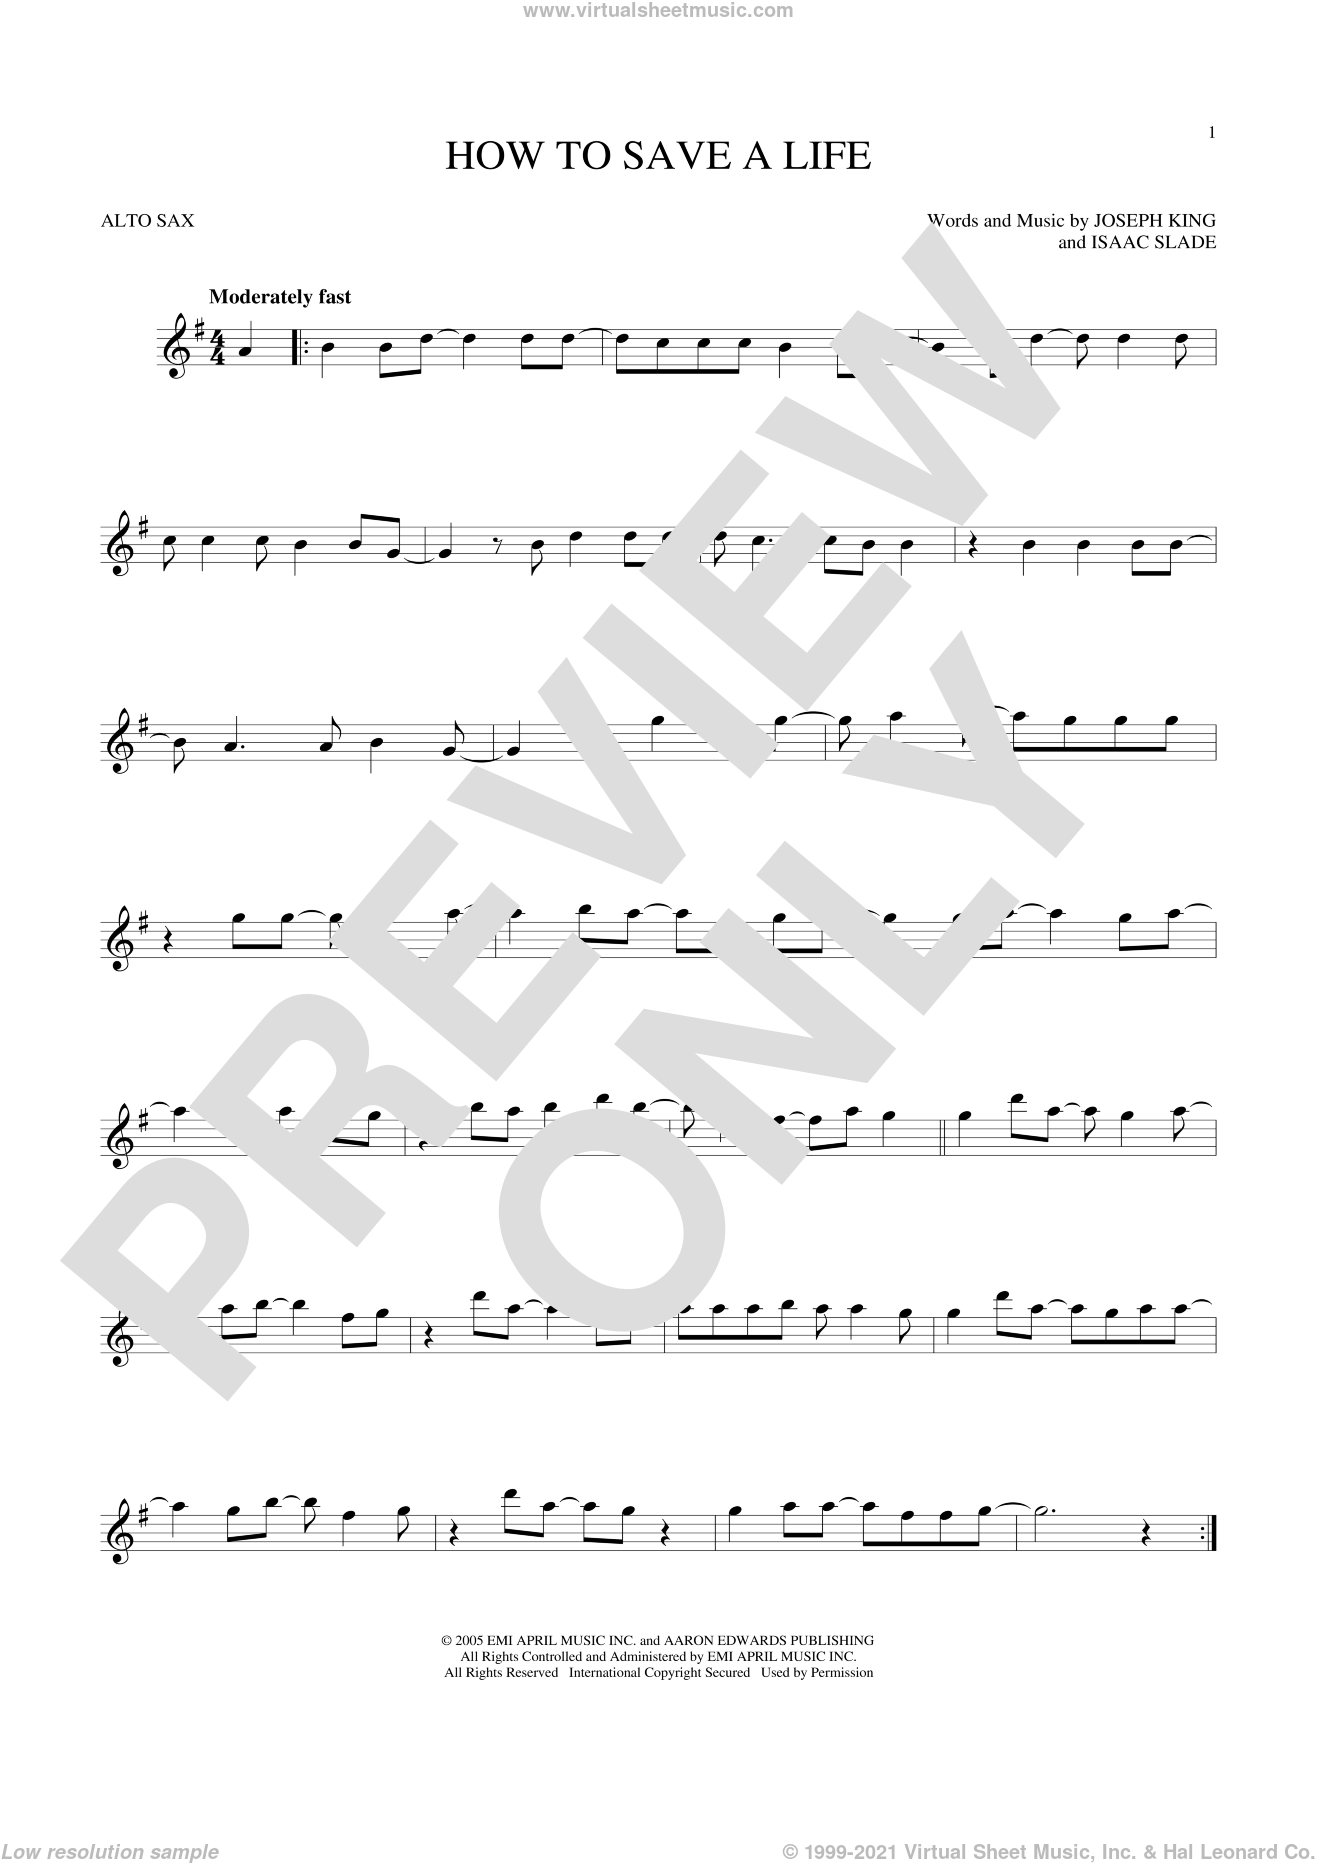 How To Save A Life sheet music for alto saxophone solo by The Fray, Isaac Slade and Joseph King, intermediate skill level